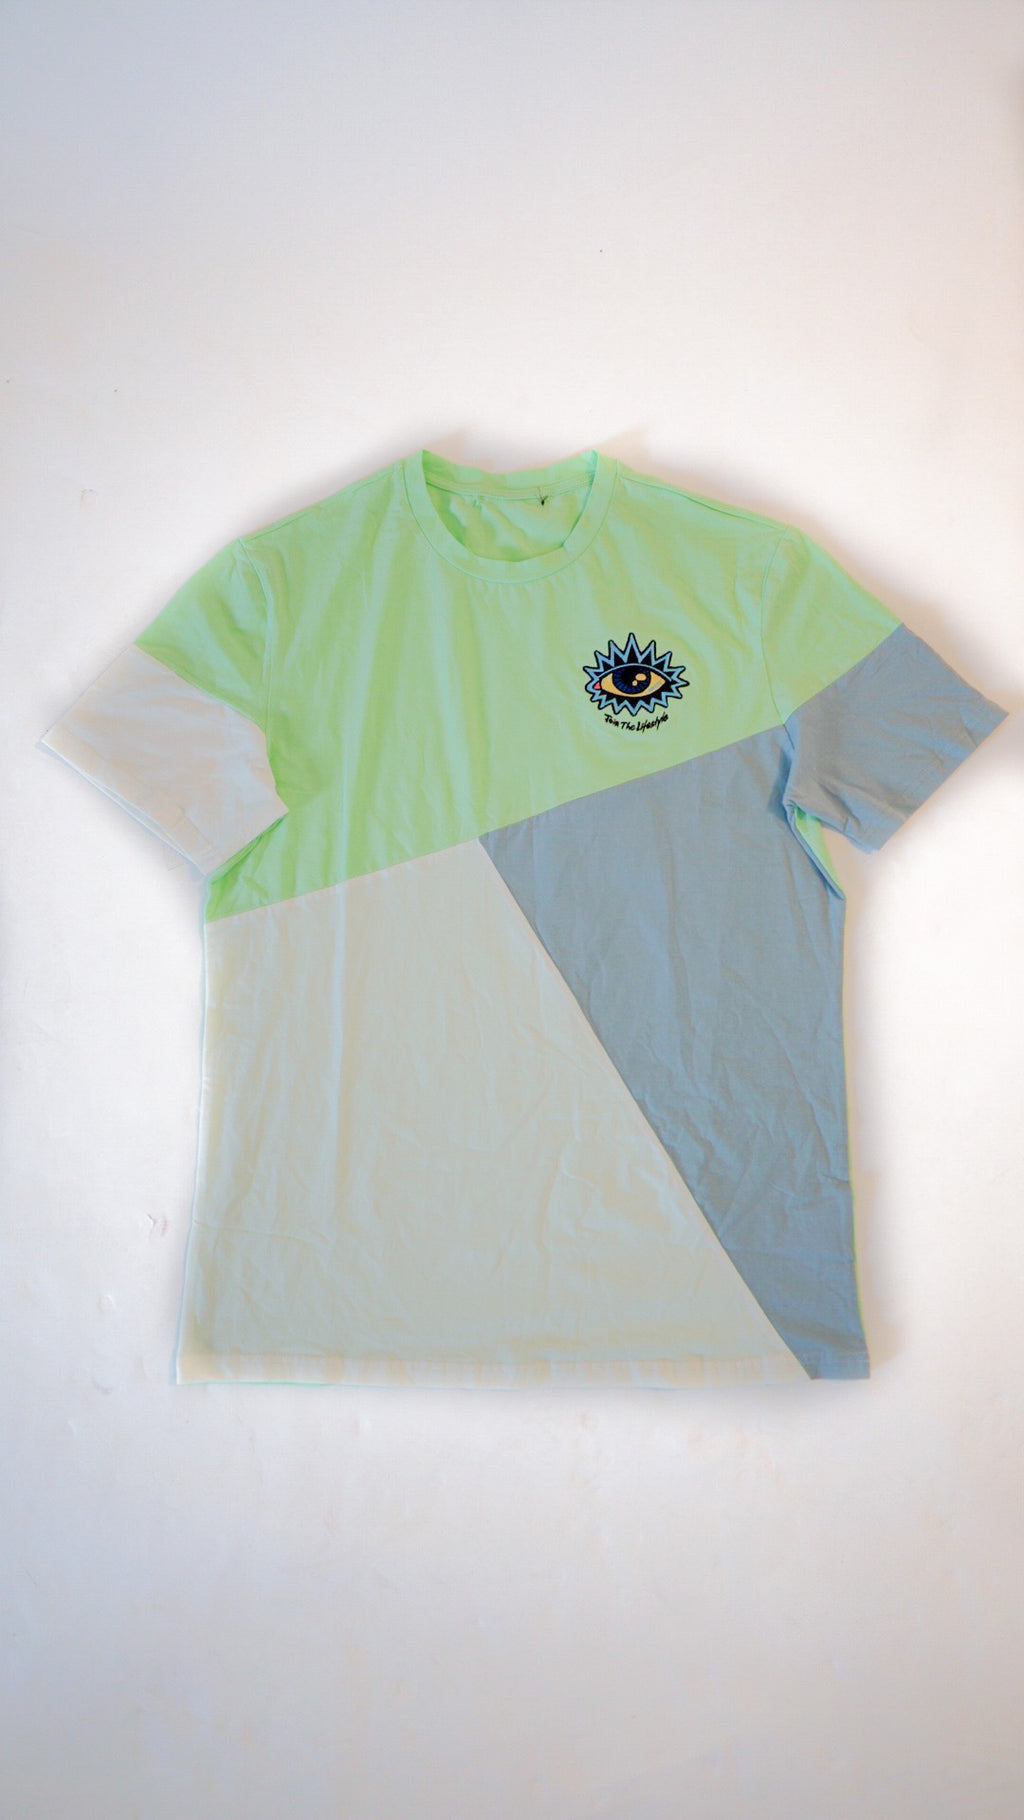 4TC Light blue & Mint T-shirt